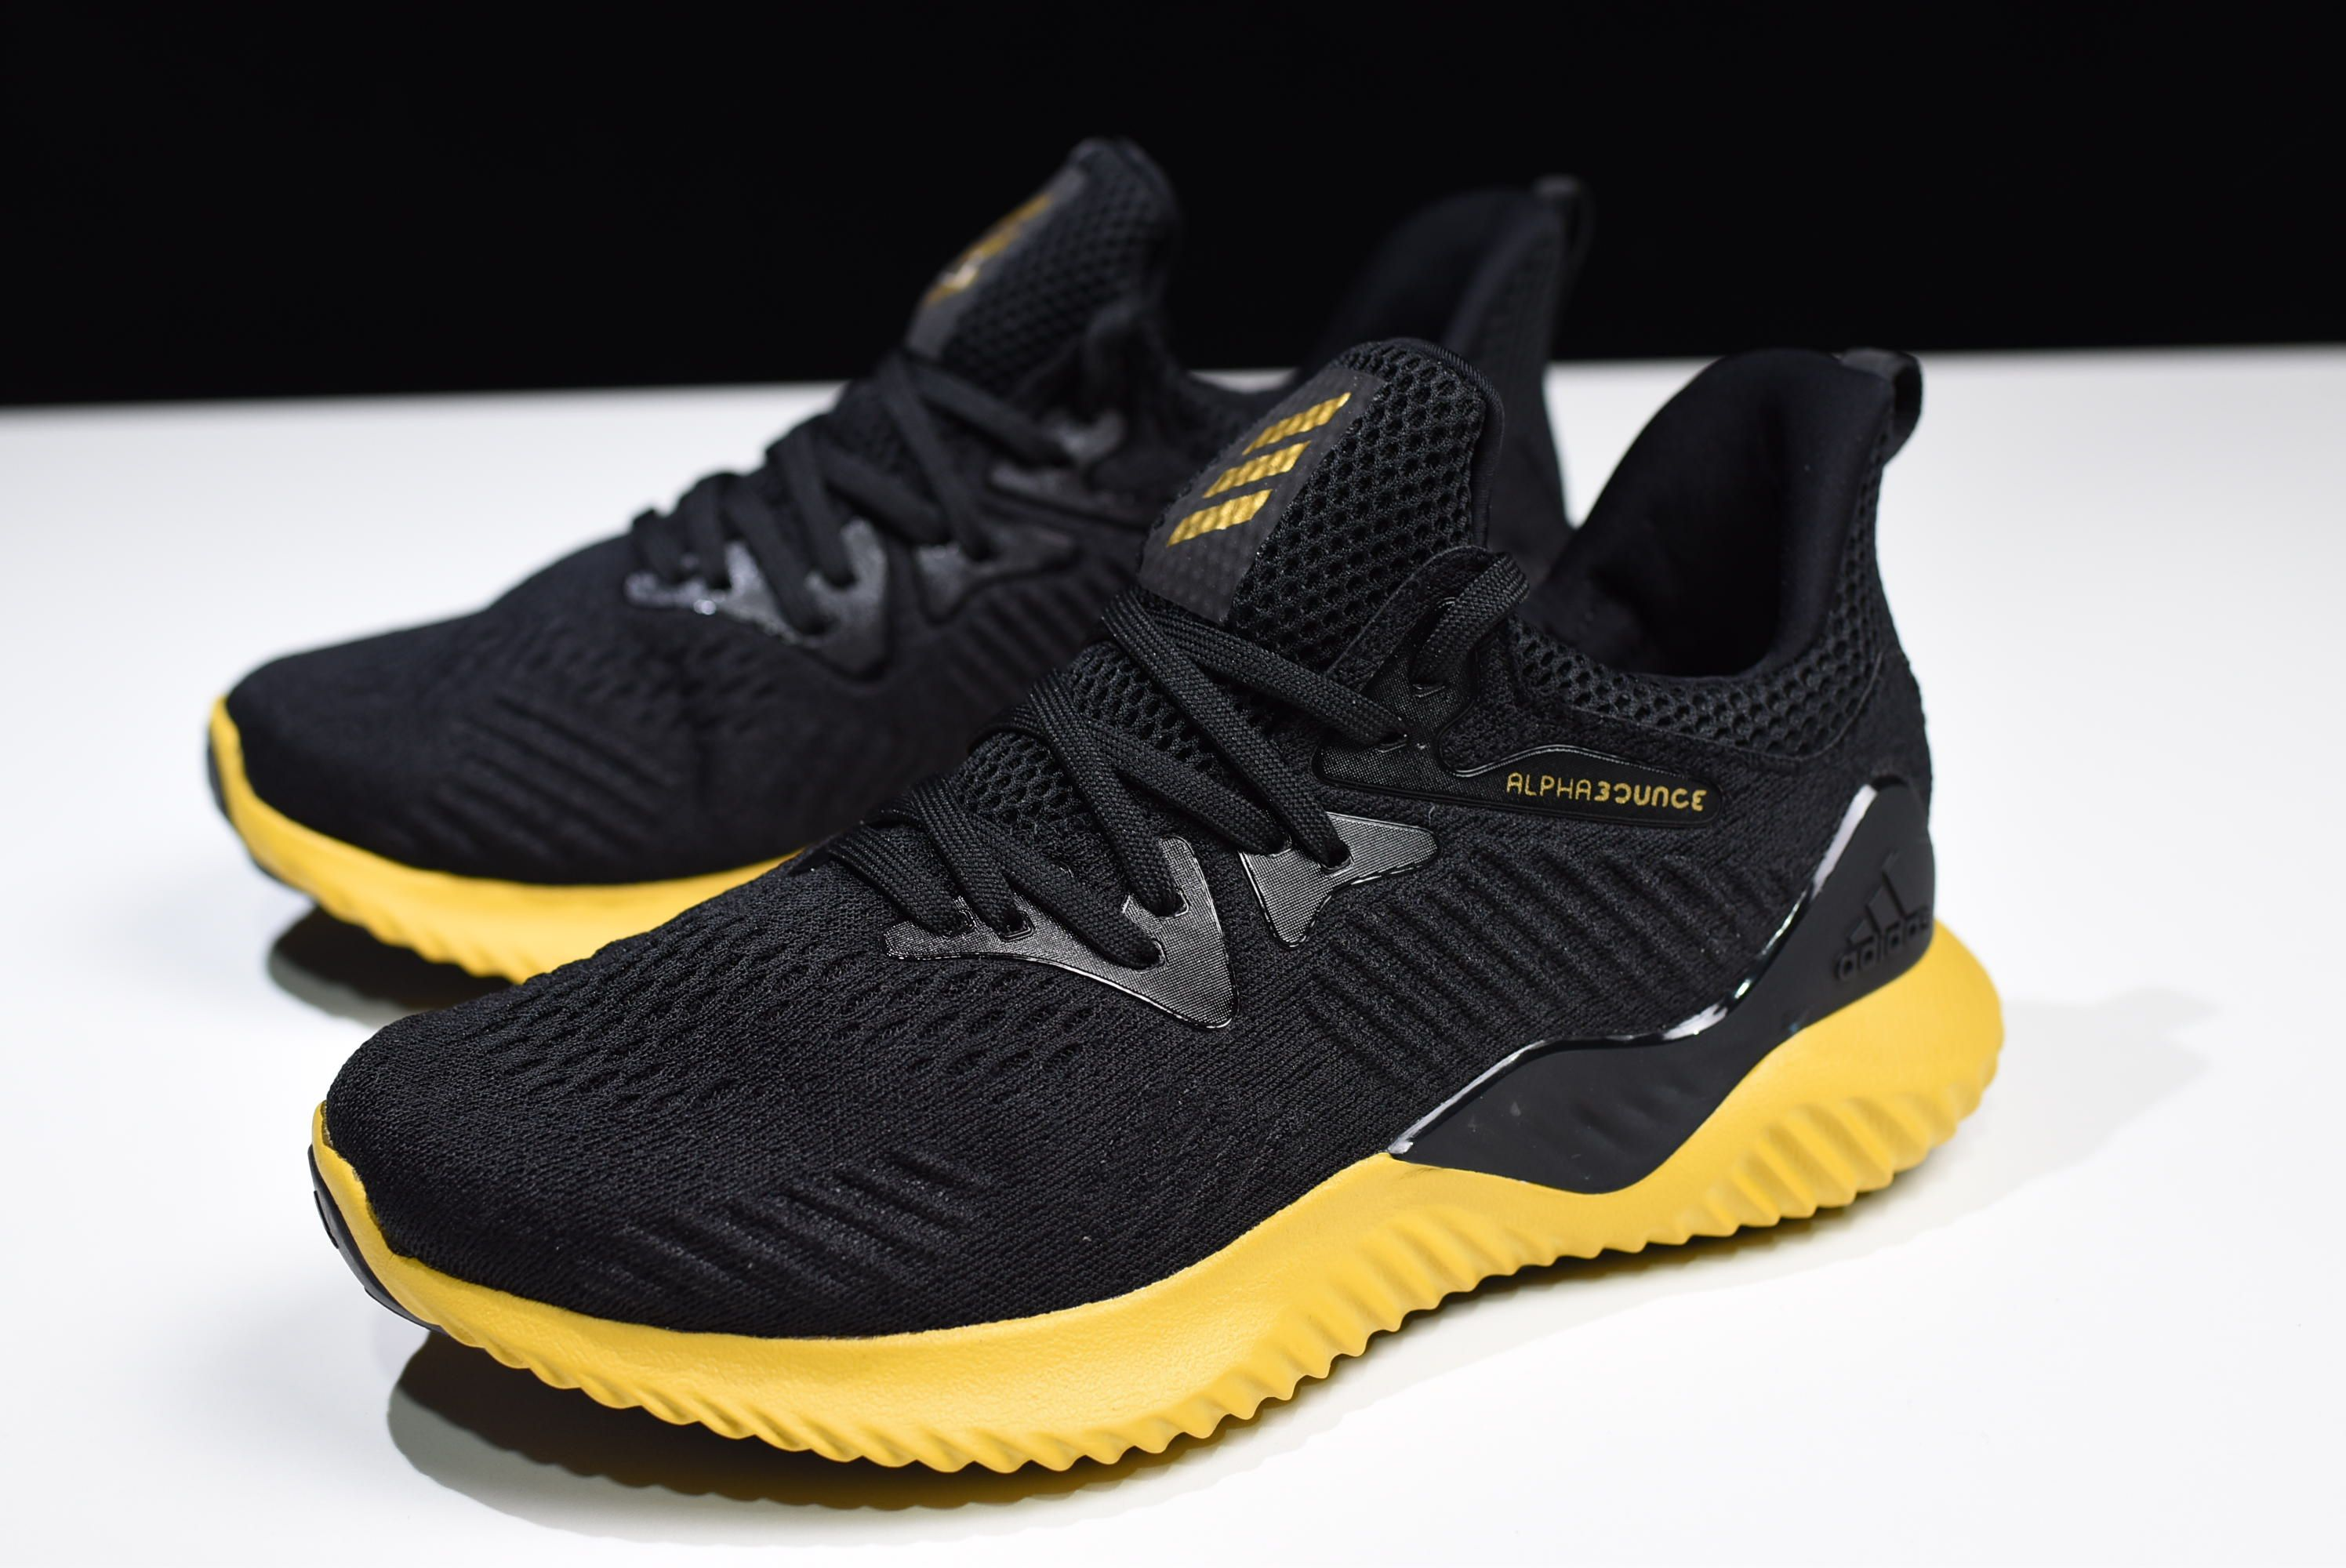 a65c26bdc62cc2 New adidas alphaBounce EM M Black Yellow CG5555 in 2018